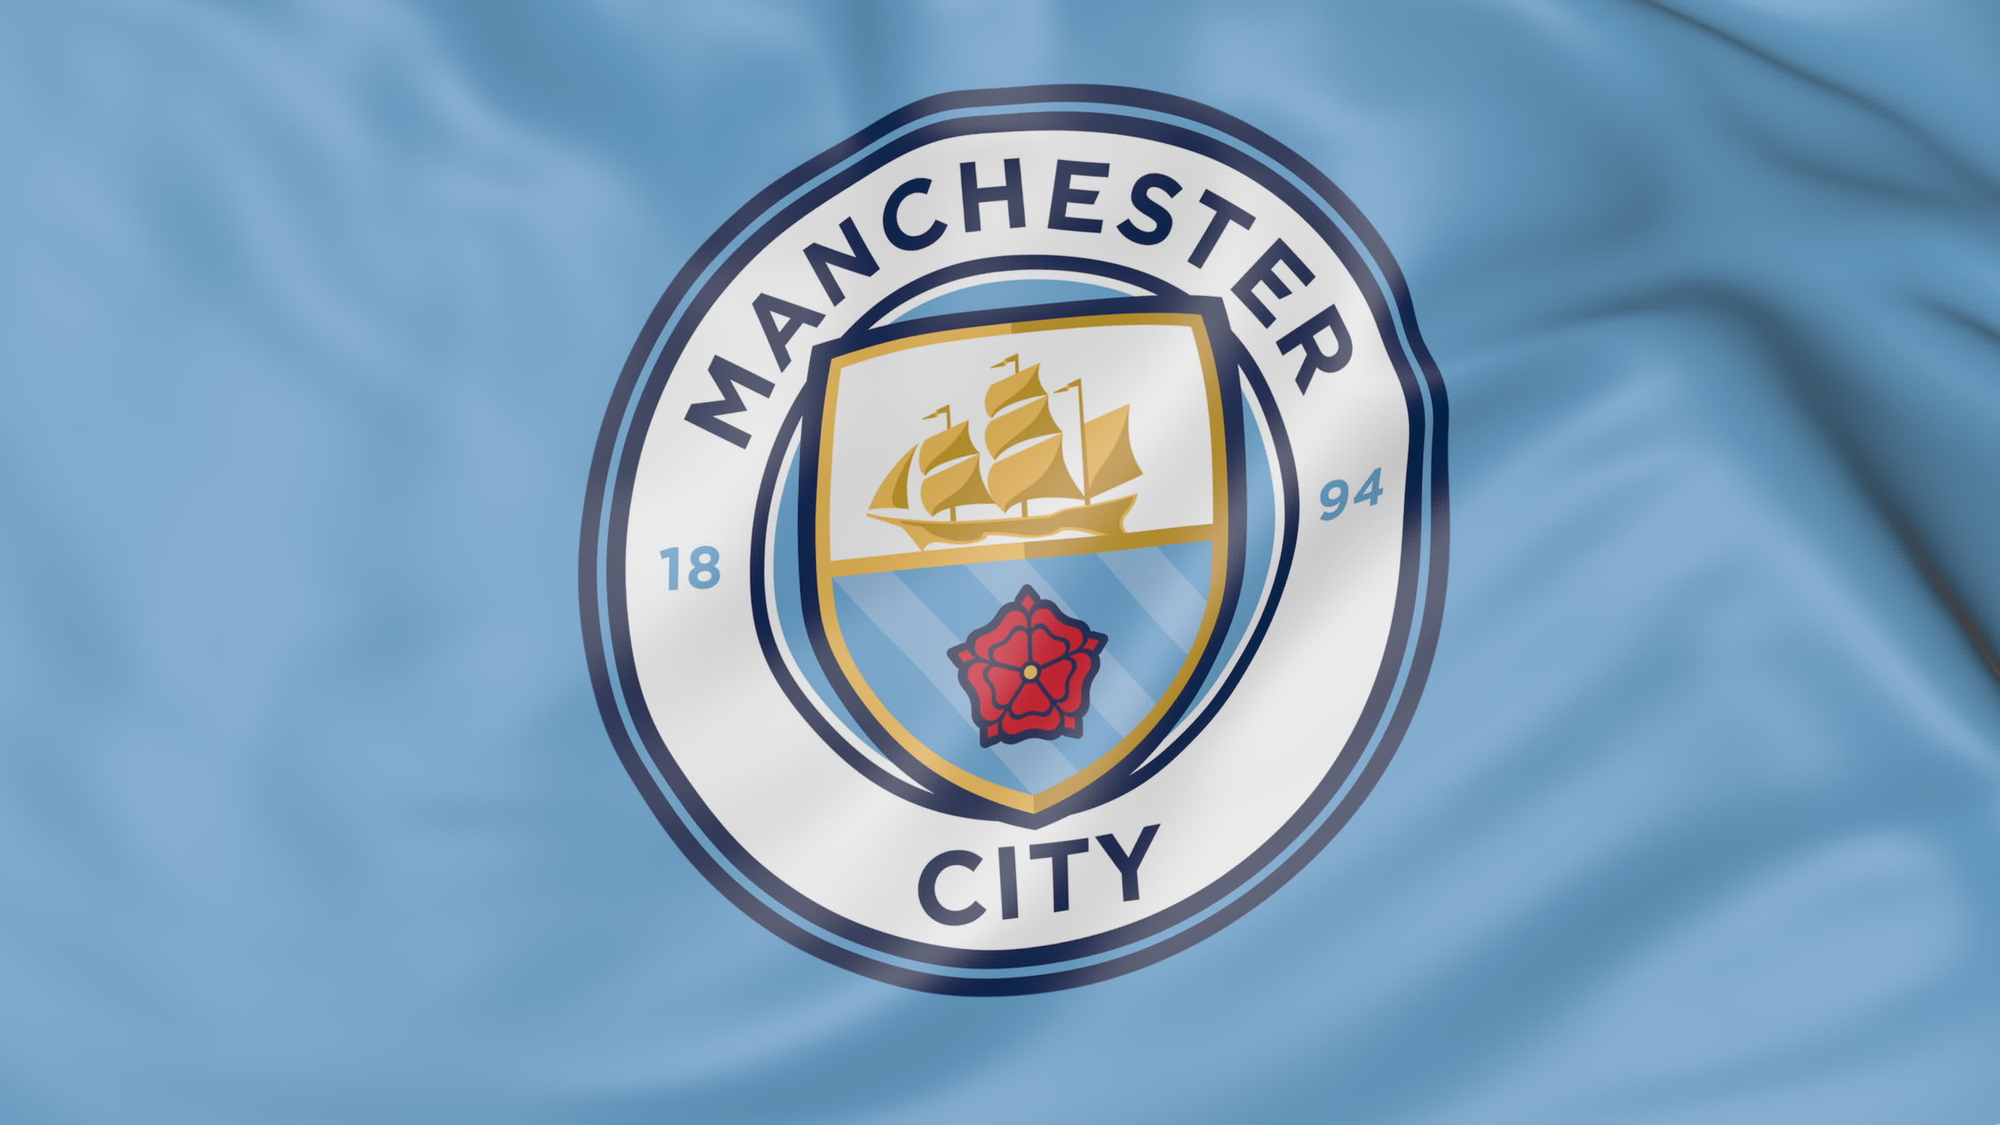 Manchester City win the Premier League